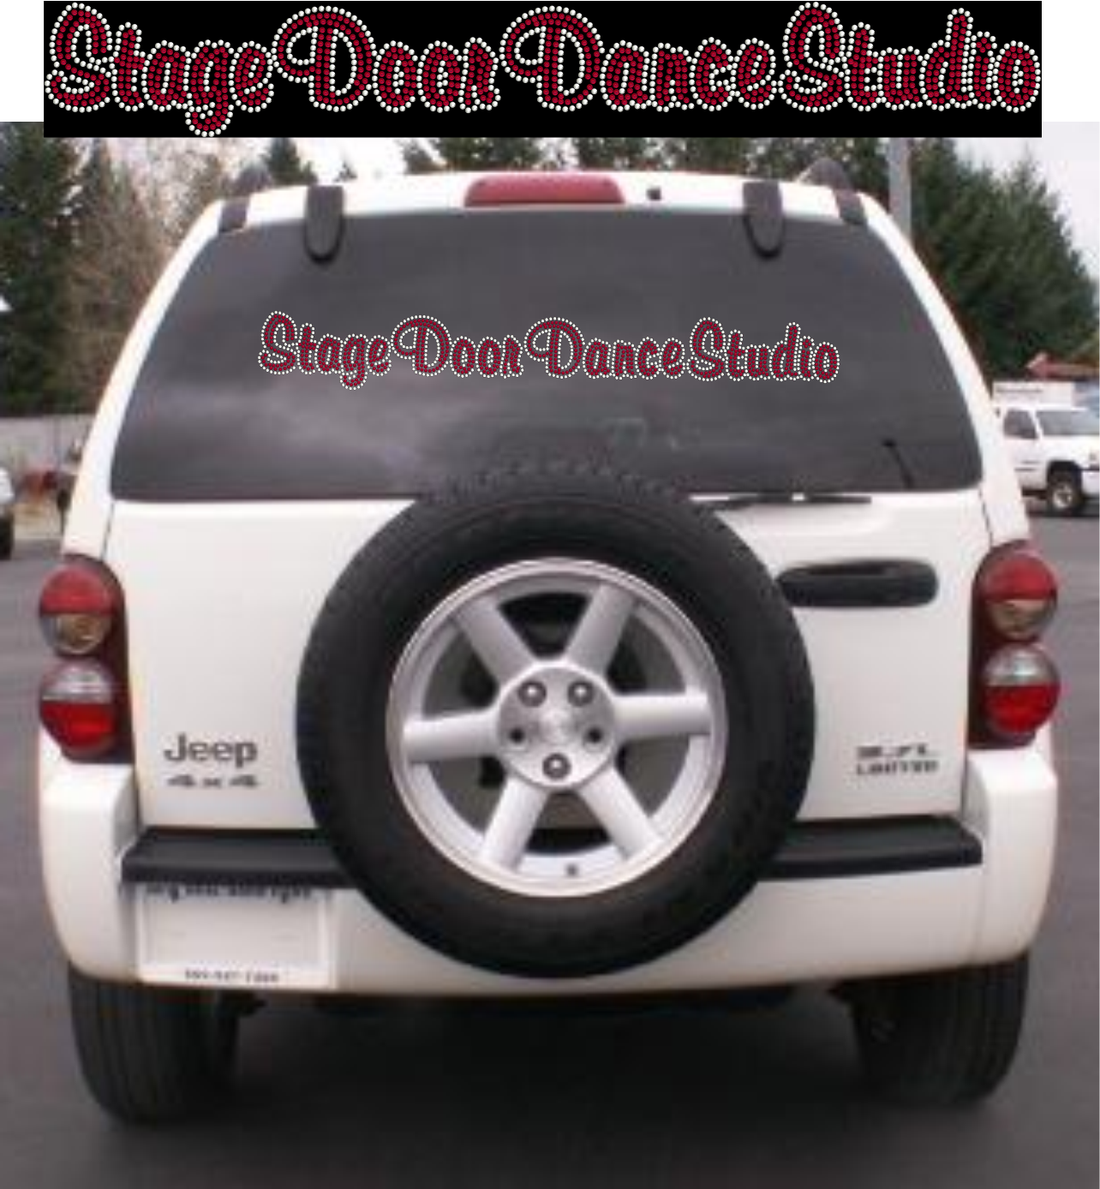 STAGE DOOR RHINESTONE CAR DECAL RHINESTONES